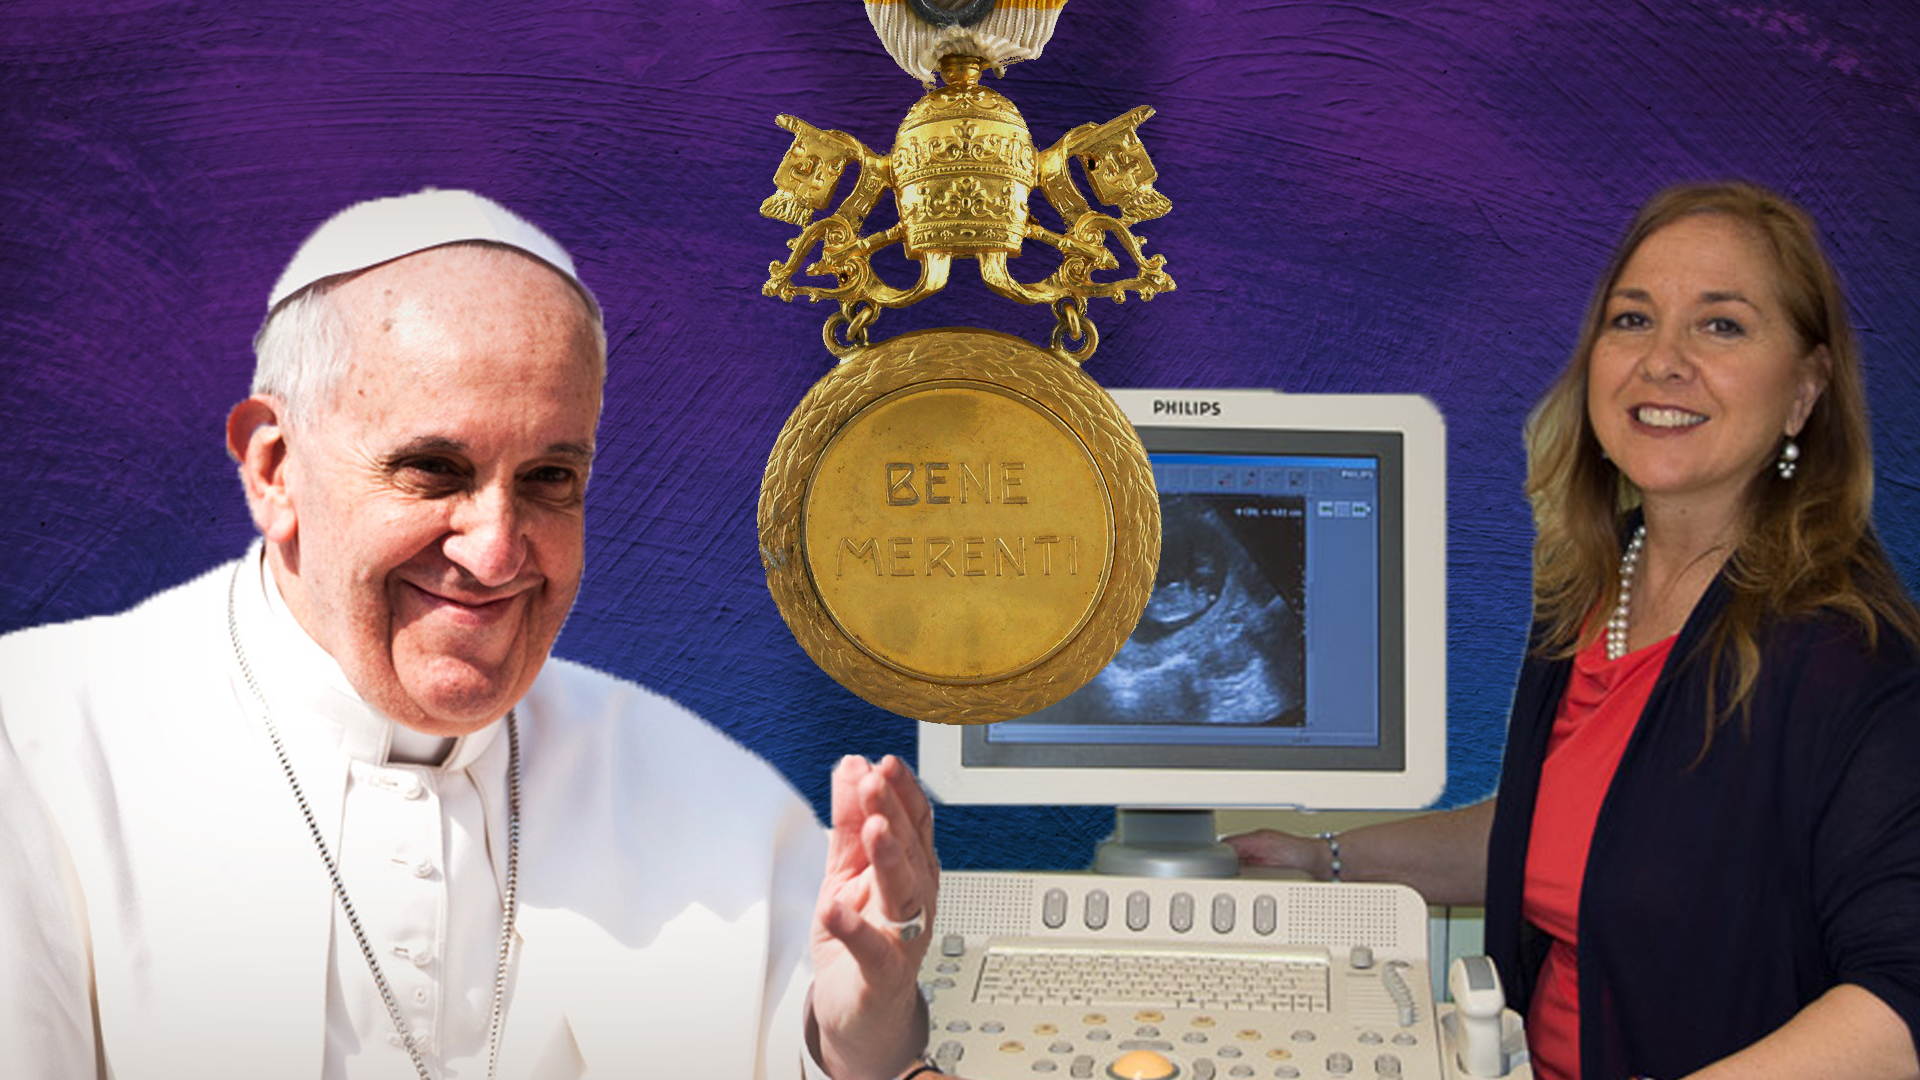 Pope Francis has awarded the Benemerenti Medal to Marie Joseph, Executive Director of Legacy of Life Foundation